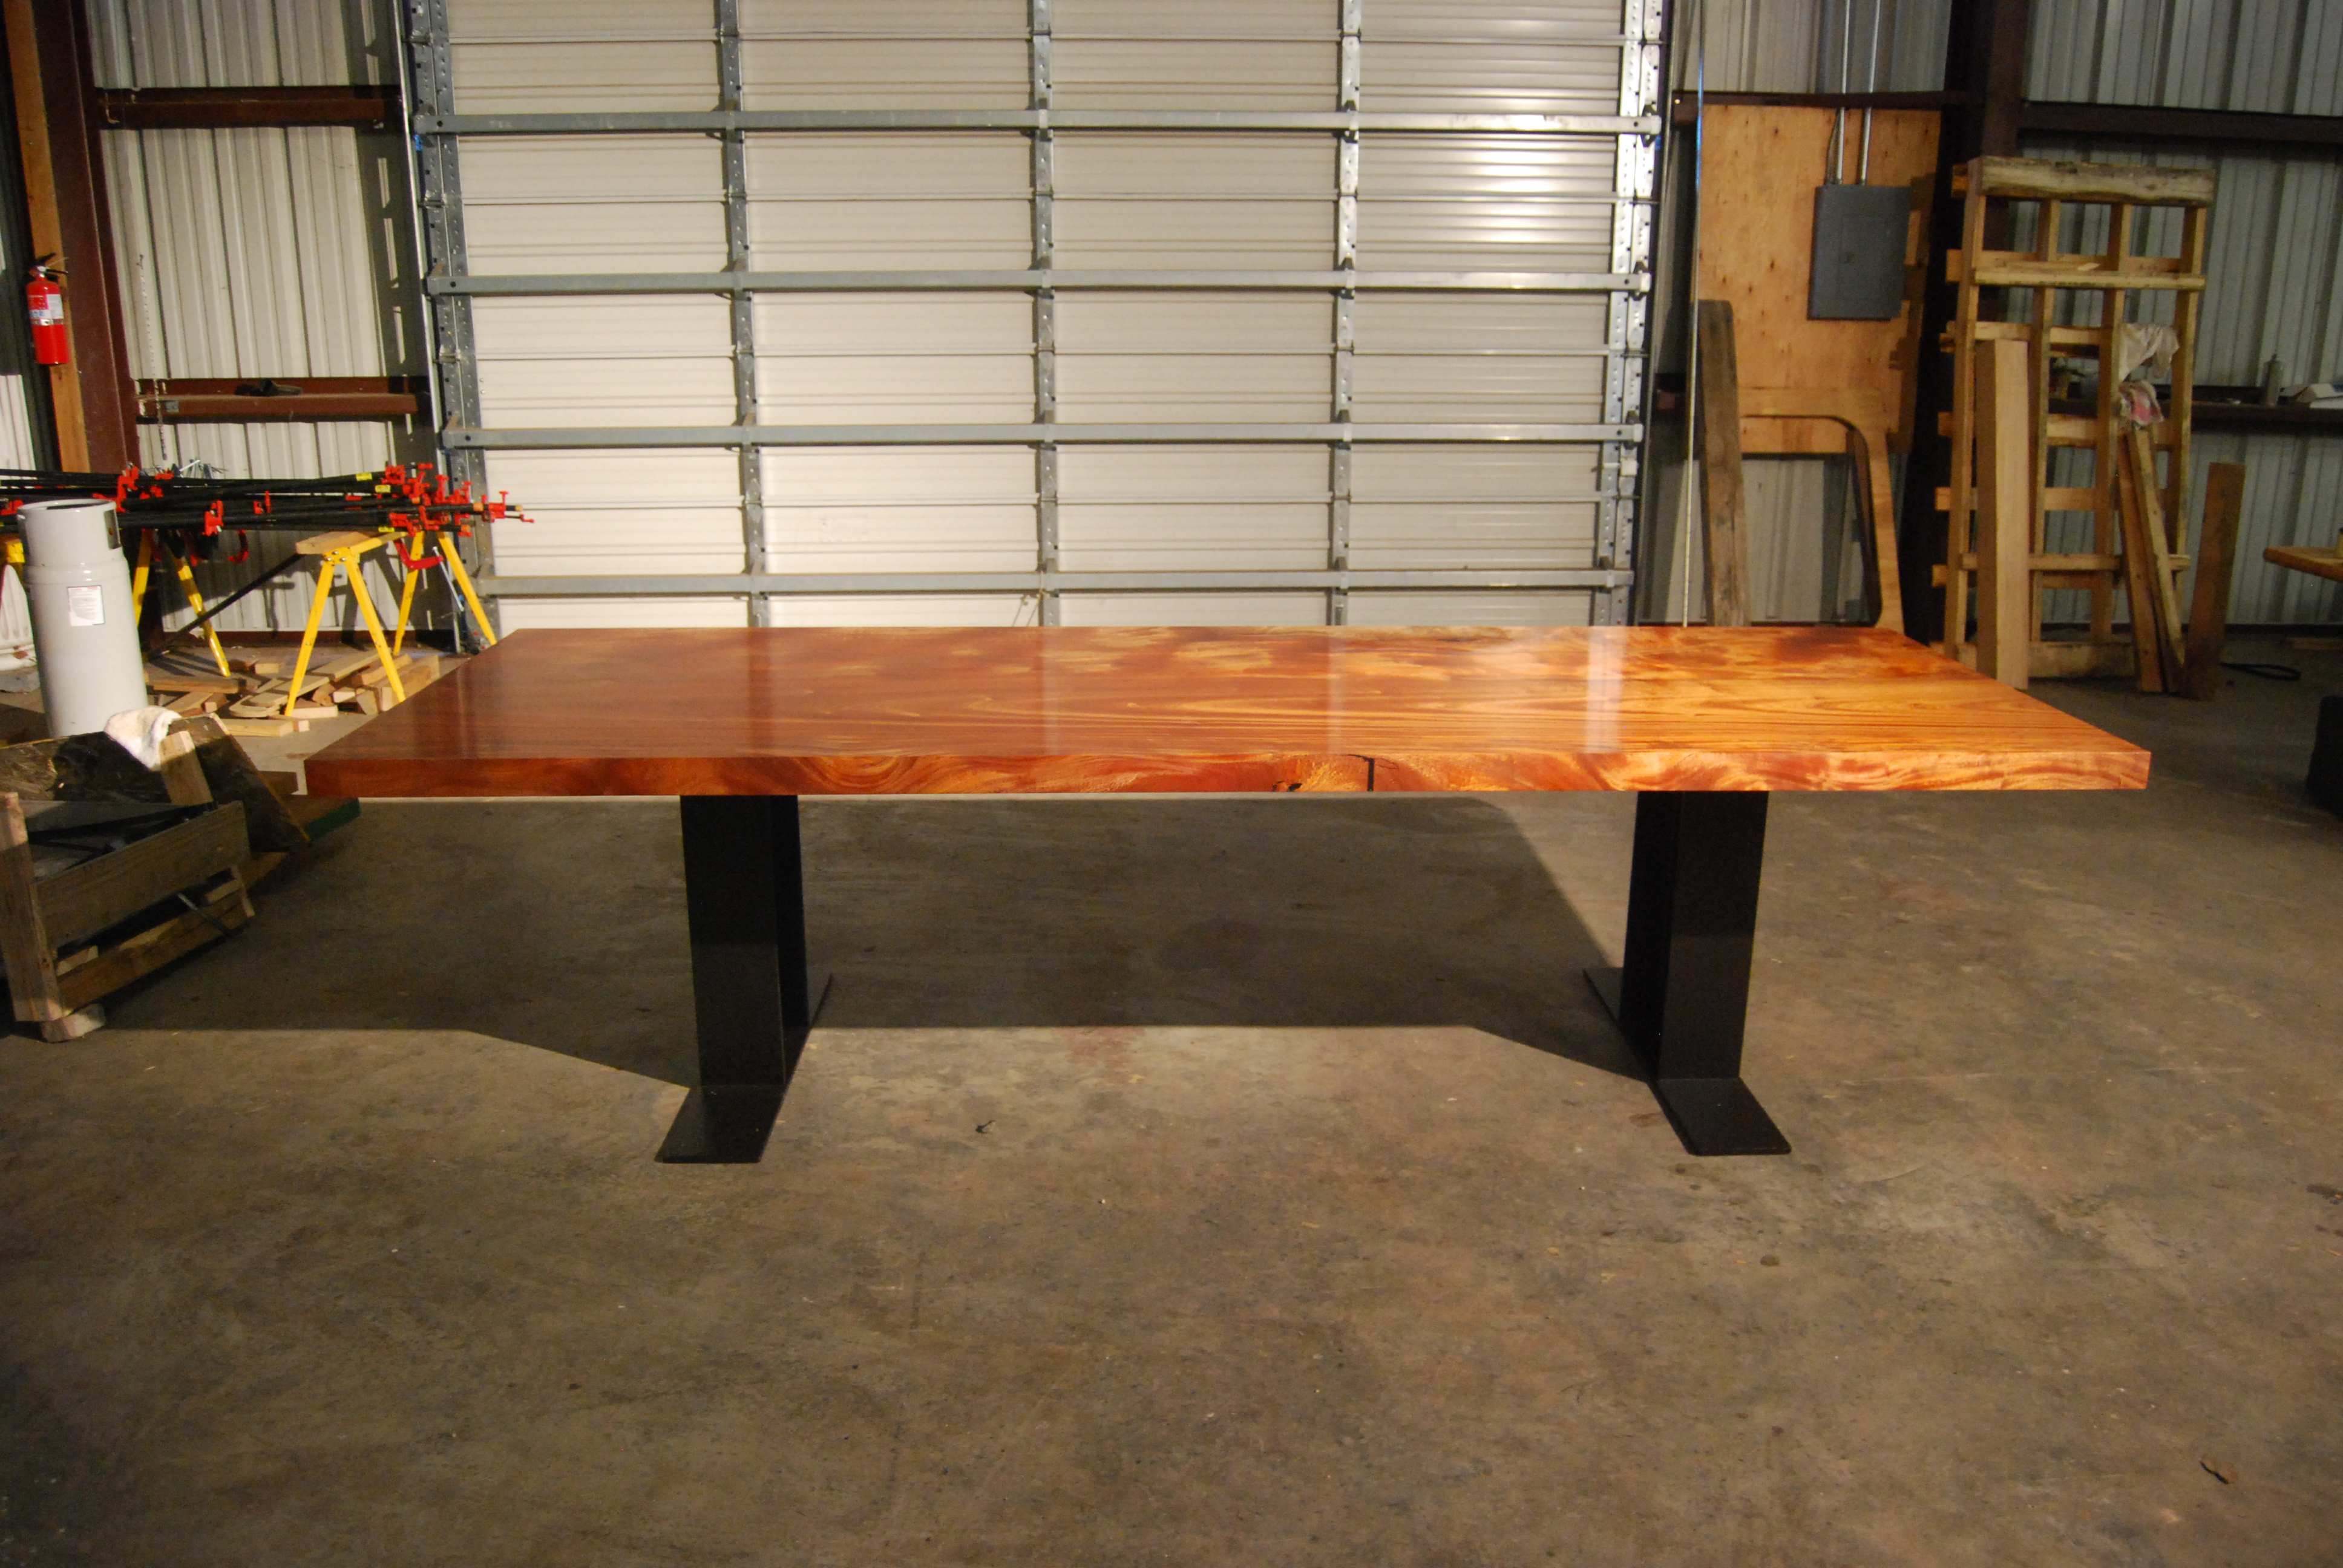 odies-oil-mark-s-sapele-table-1.jpg